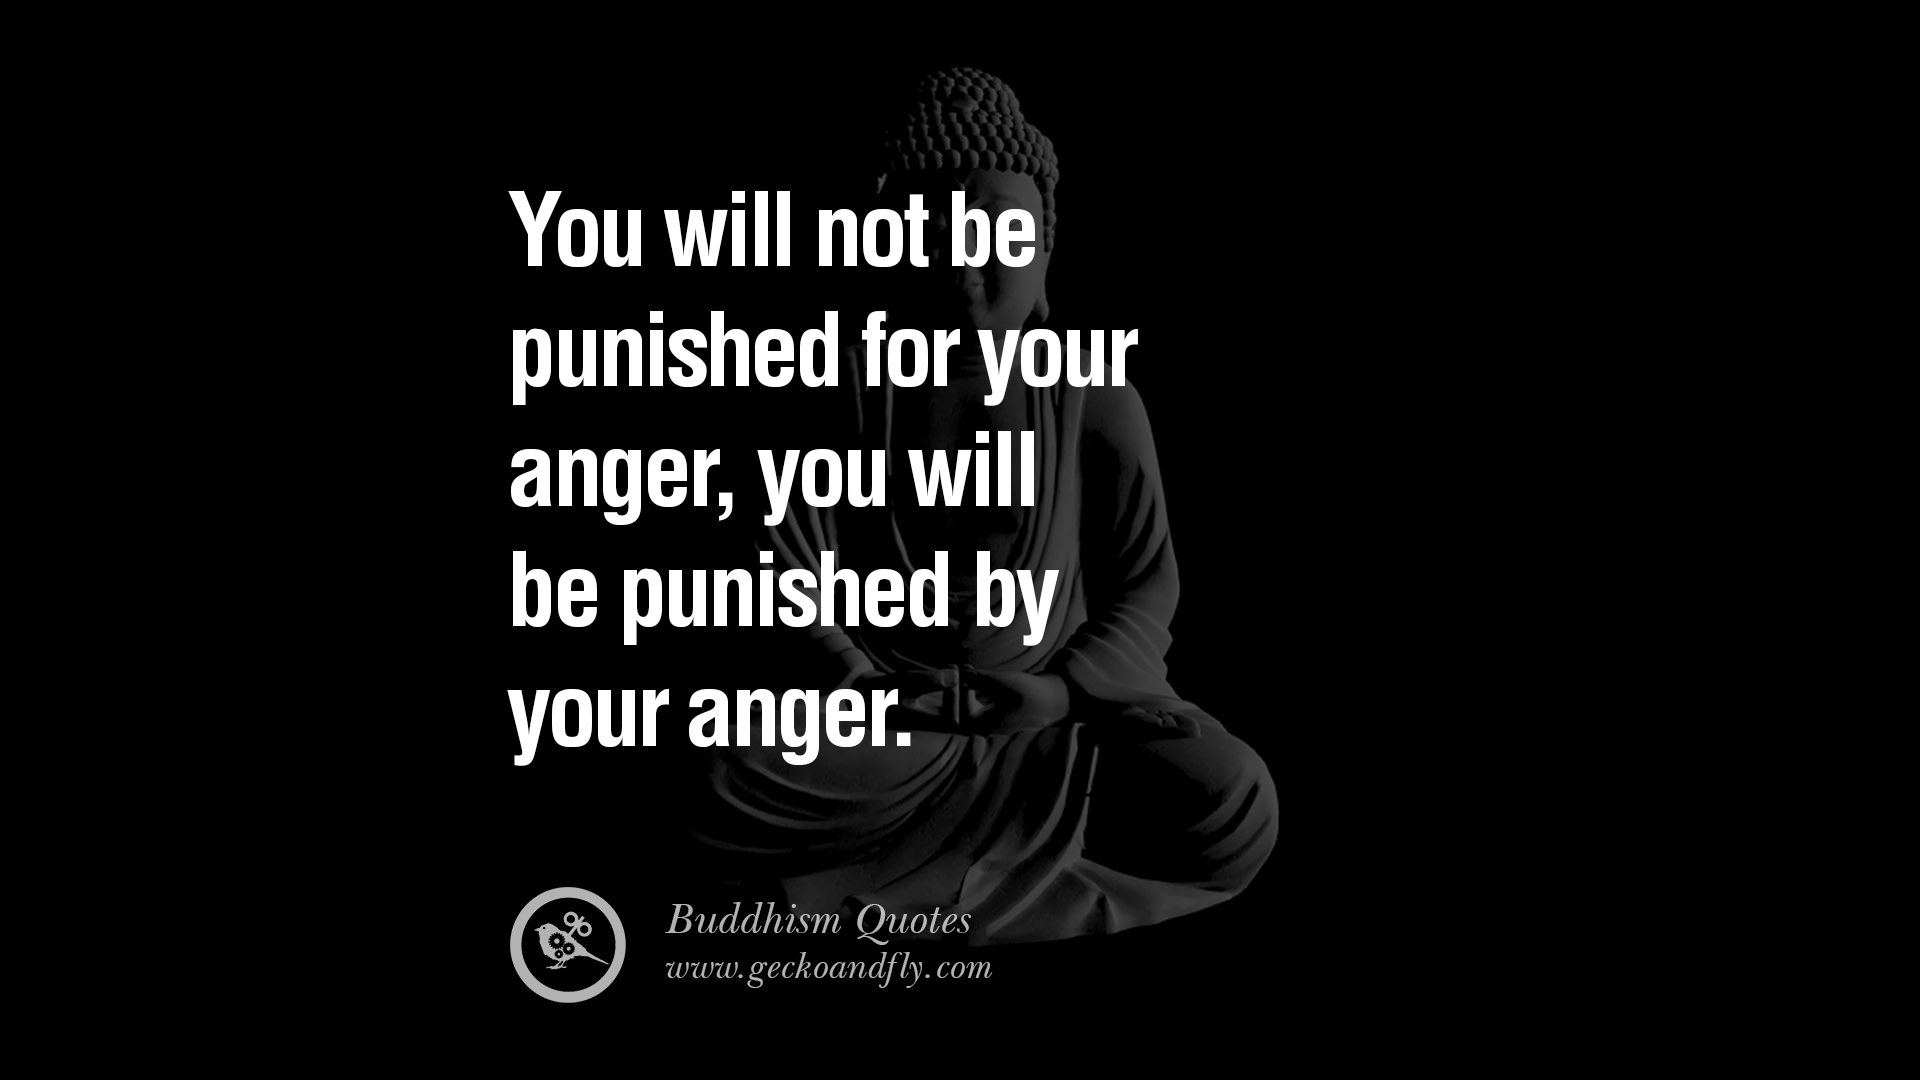 15 Zen Buddhism Quotes On Love, Anger Management And Salvation